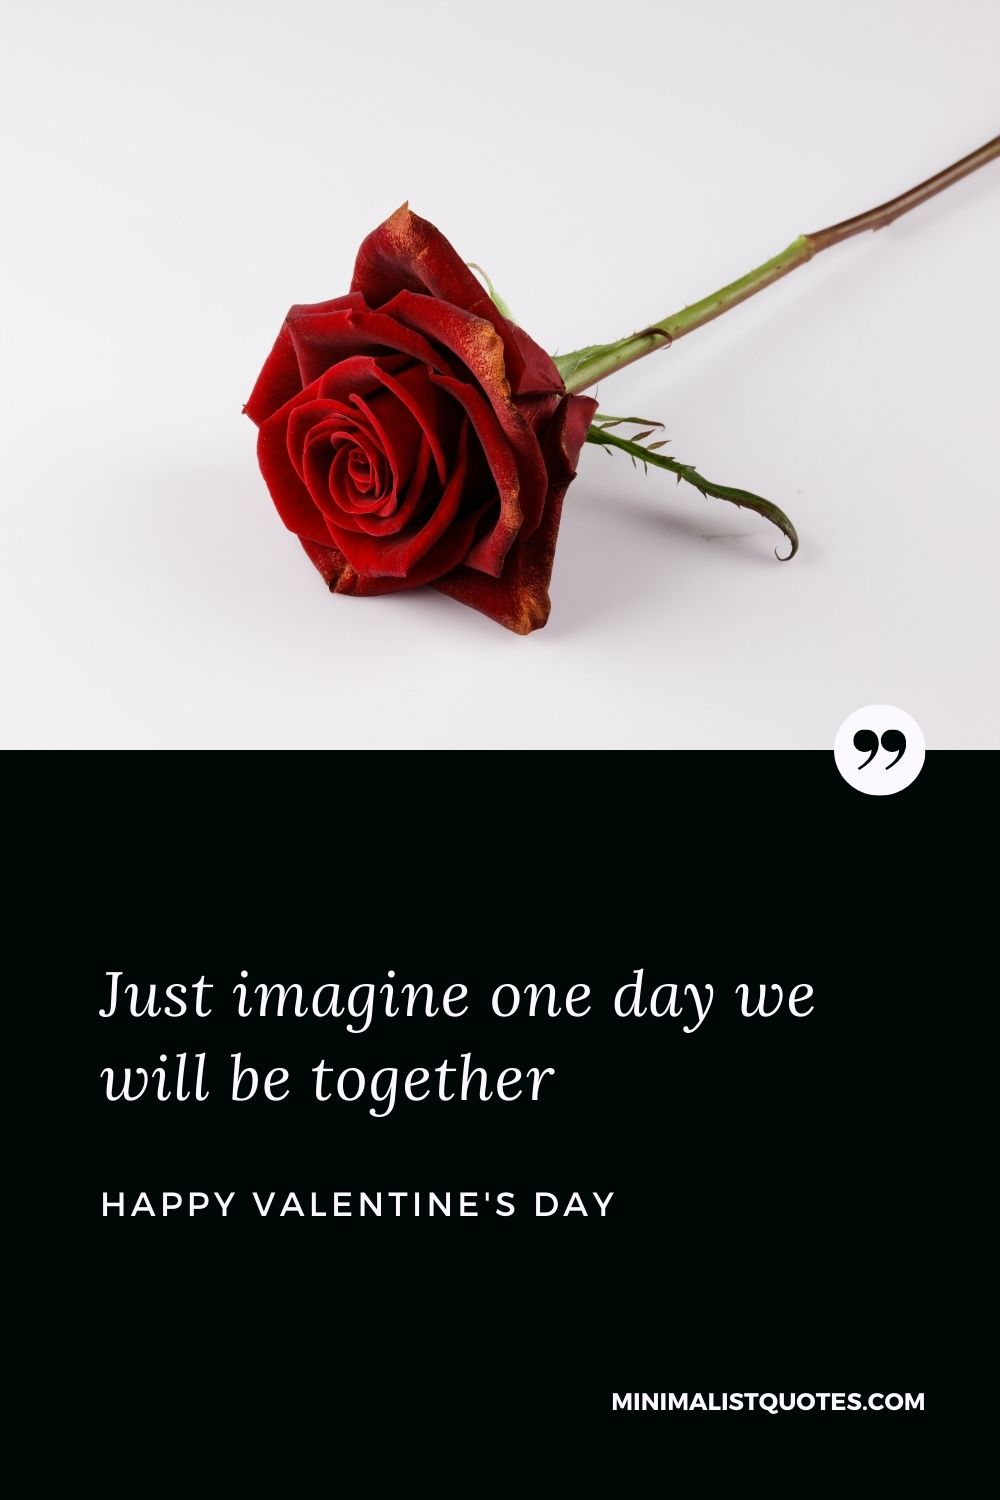 Valentine's Day Wish & Message With HD Image: Just imagine one day we will be together. Happy Valentine's Day!